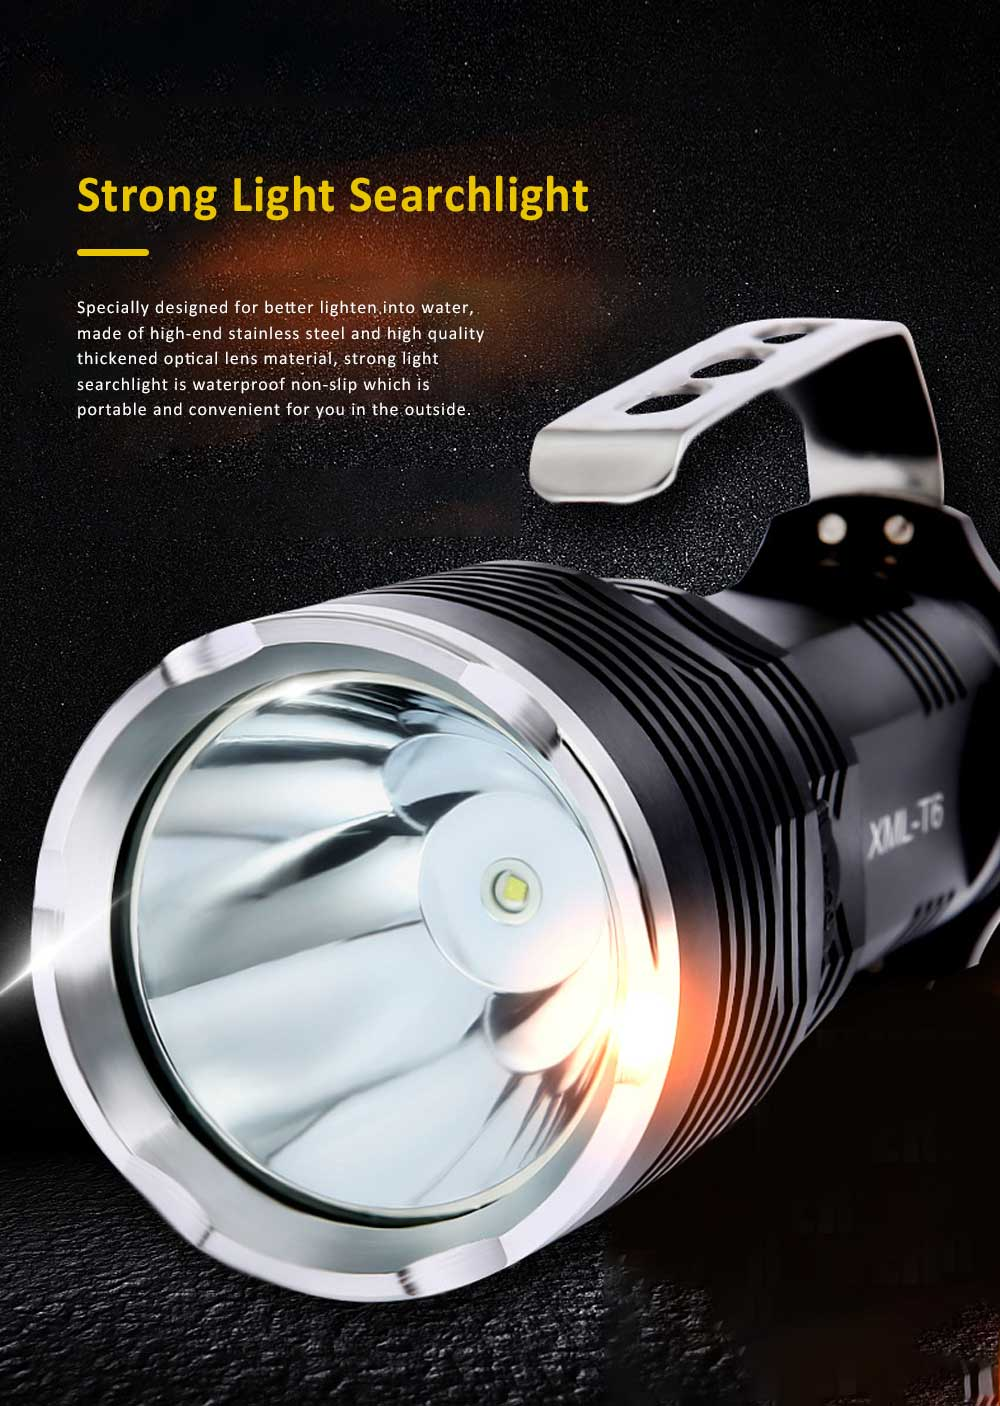 Non-slip & Waterproof Strong Light Searchlight with Probe Handle & Waterproof Rubber Ring 0